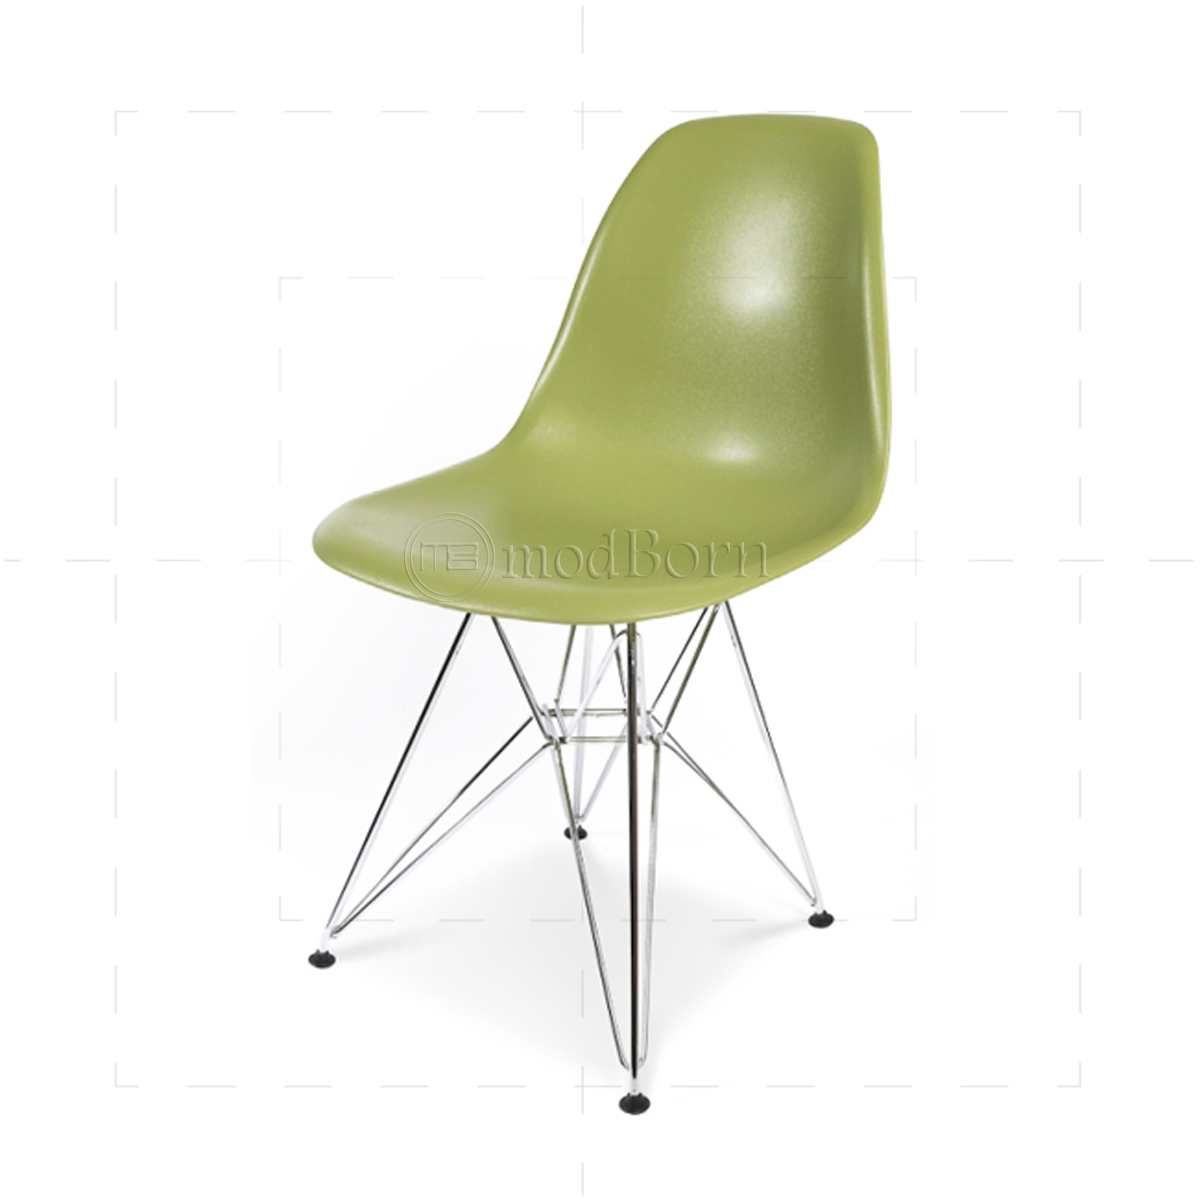 Eames style dining dsr eiffel chair green replica for Eames replica deutschland